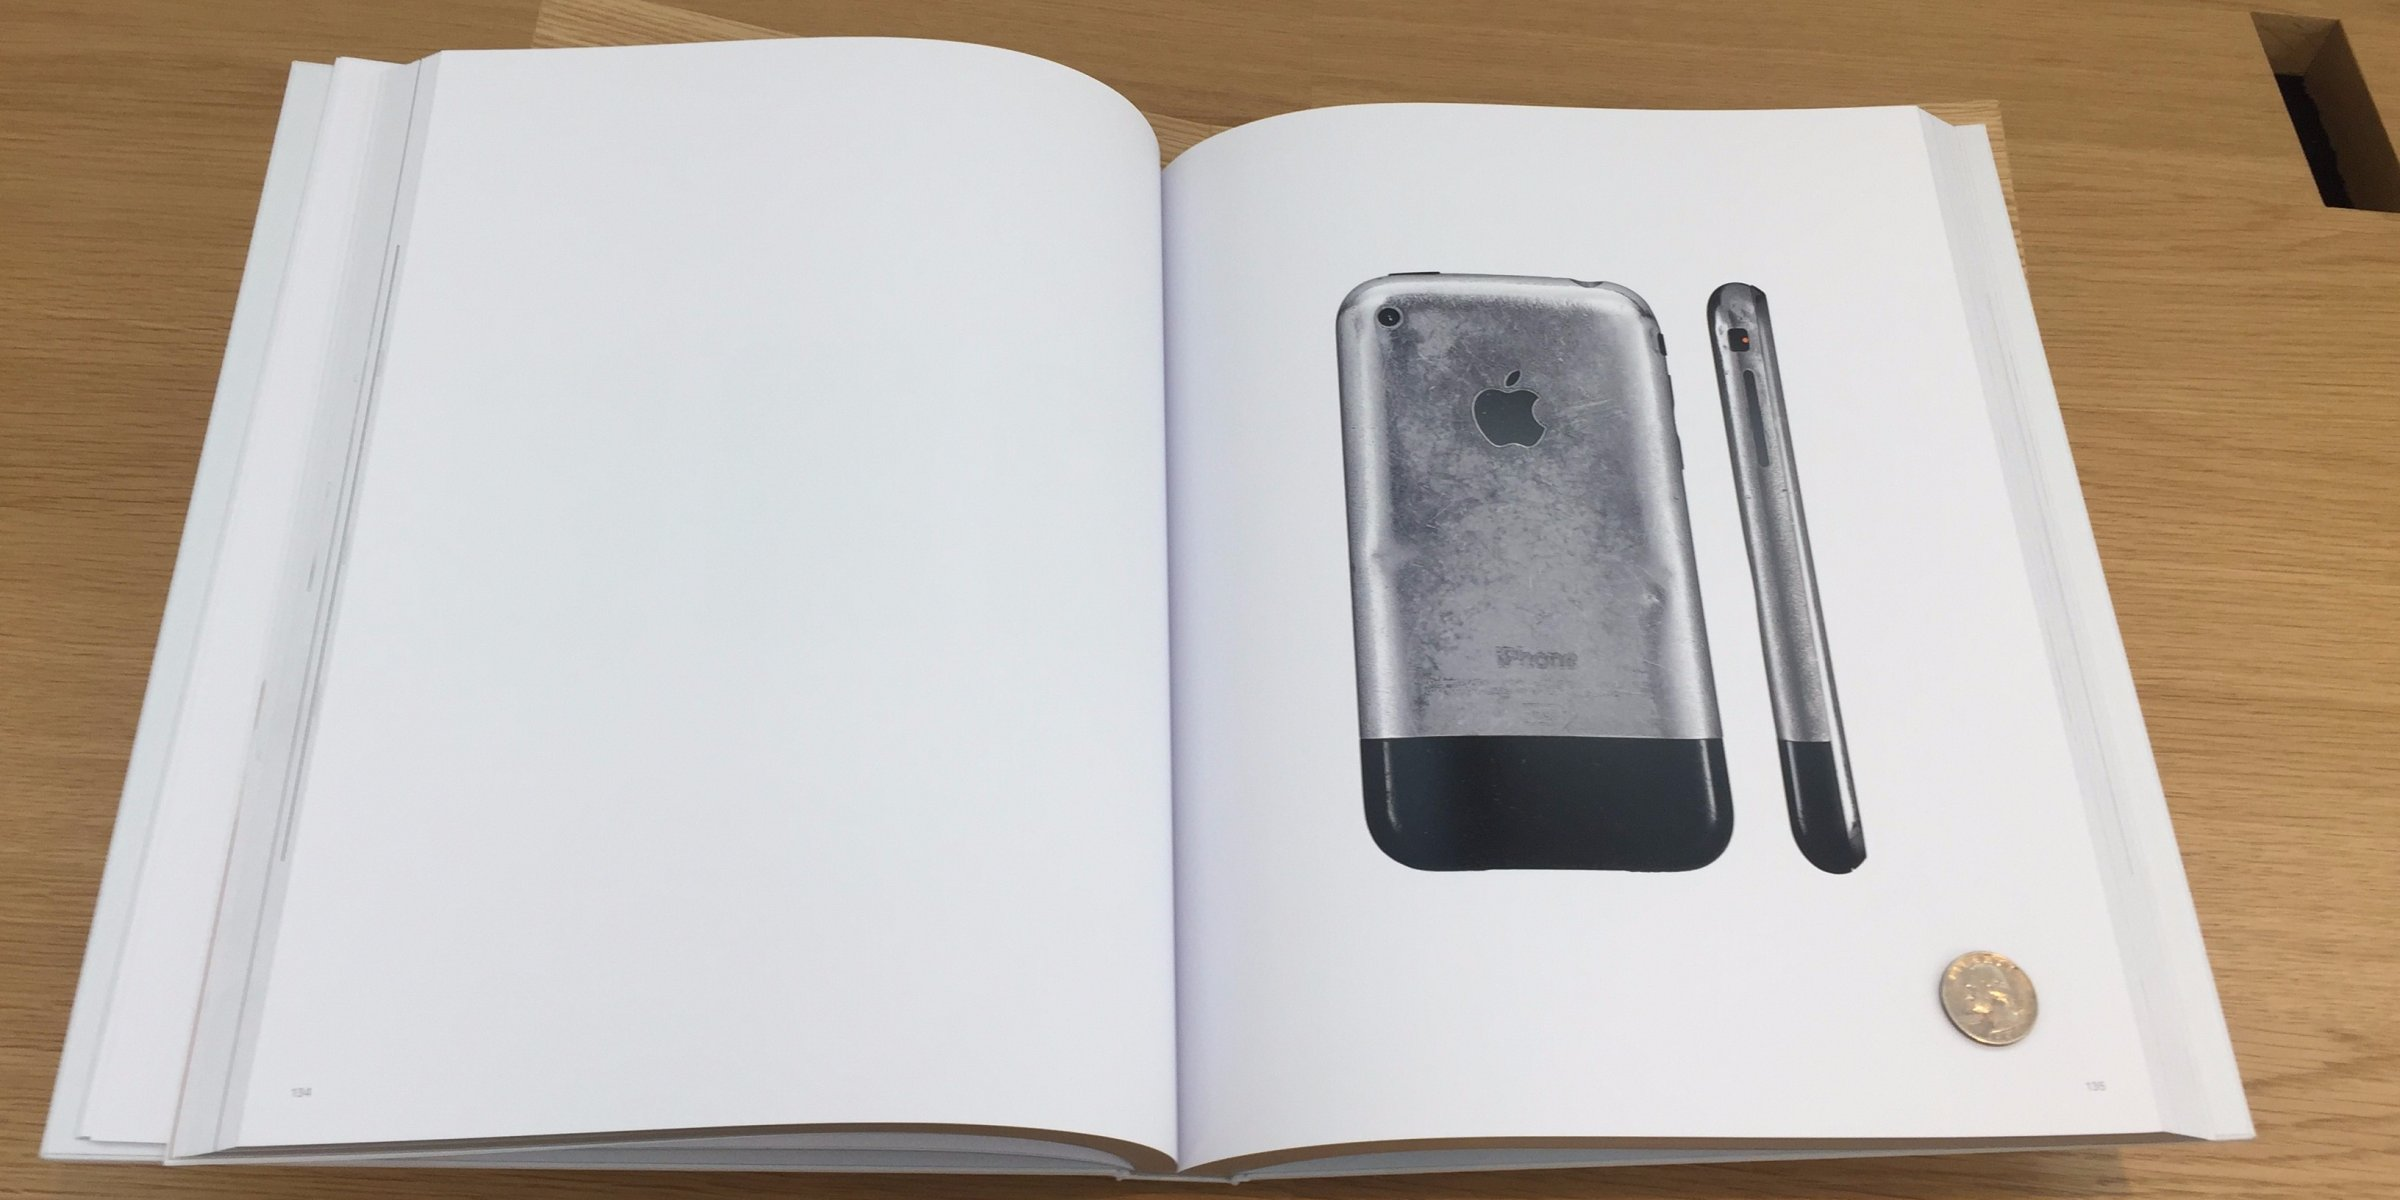 free photo book and apple history nobody paper free download